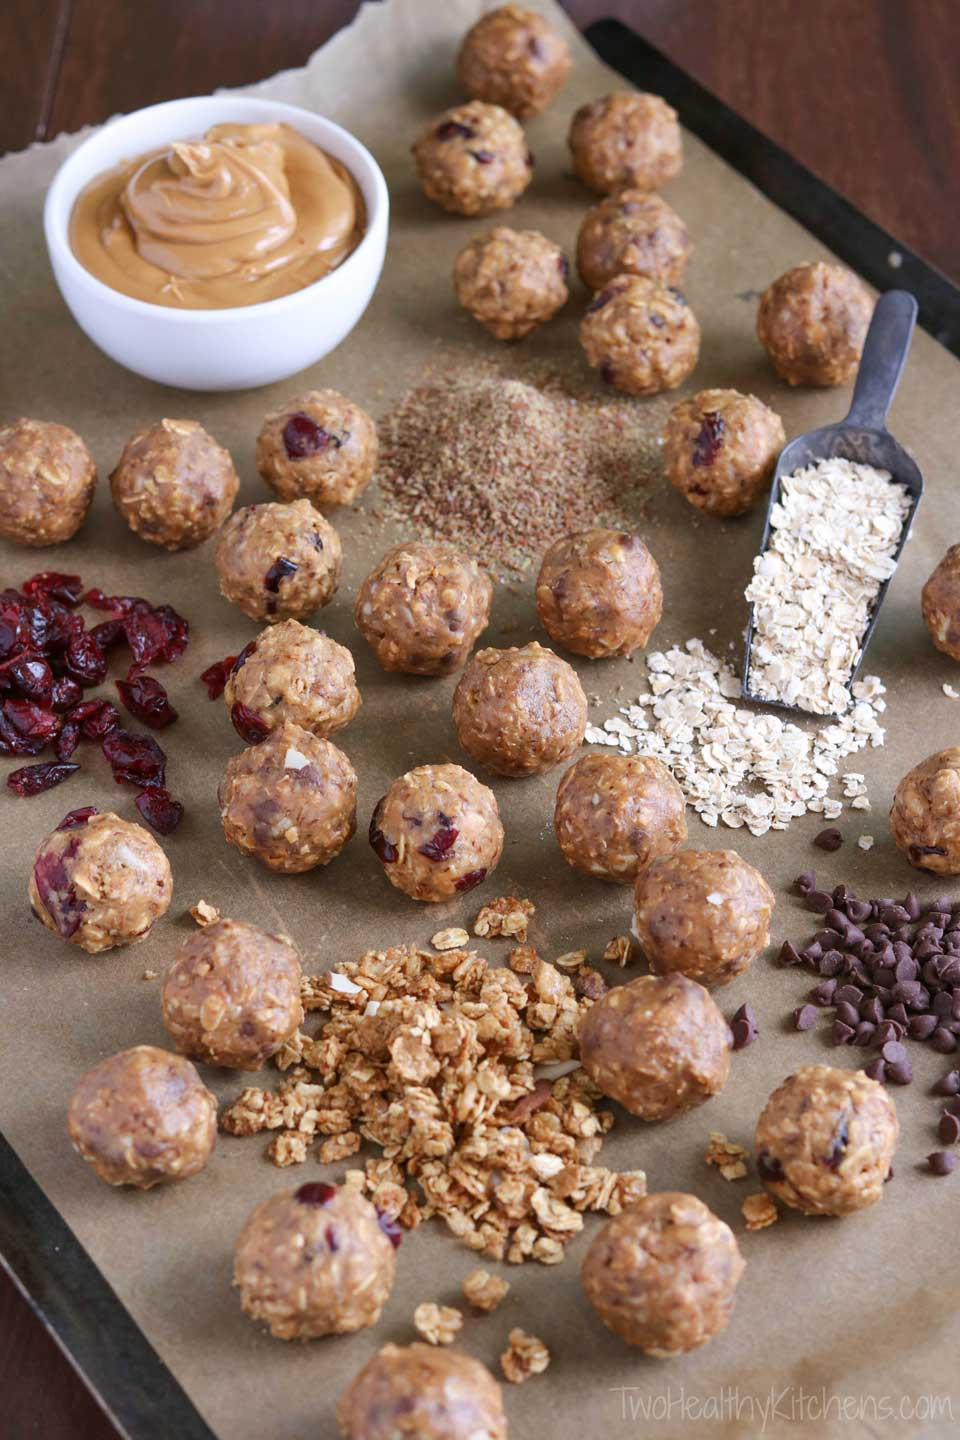 Freezable, no-bake Energy Balls with protein and whole grains! These Crunchy Granola Snack Bites will keep you satisfyingly full and power you through whatever the day might hold. A perfect healthy snack recipe, or a grab-and-go, make-ahead breakfast recipe! With peanut butter, oats, flax, and granola, plus dried fruit or chocolate chips - these energy bites are crunchy, chewy, and delicious! A healthy recipe with a few simple ingredients you probably have on hand! | www.TwoHealthyKitchens.com